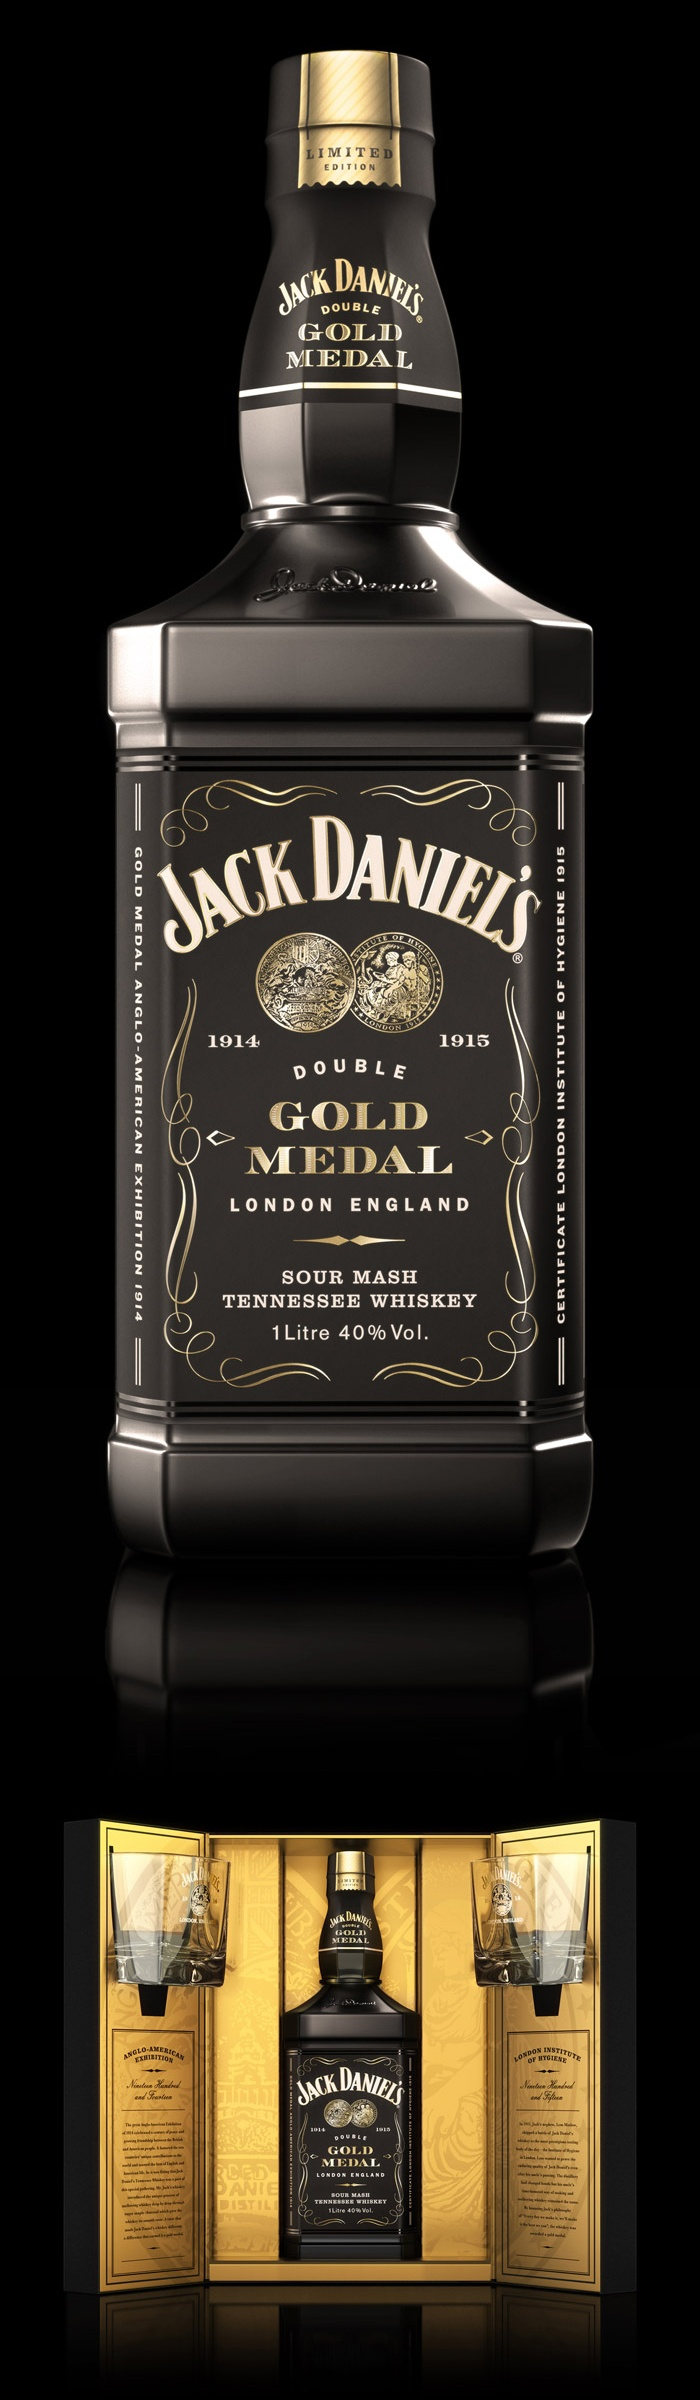 Jack daniel s double gold medal limited edition